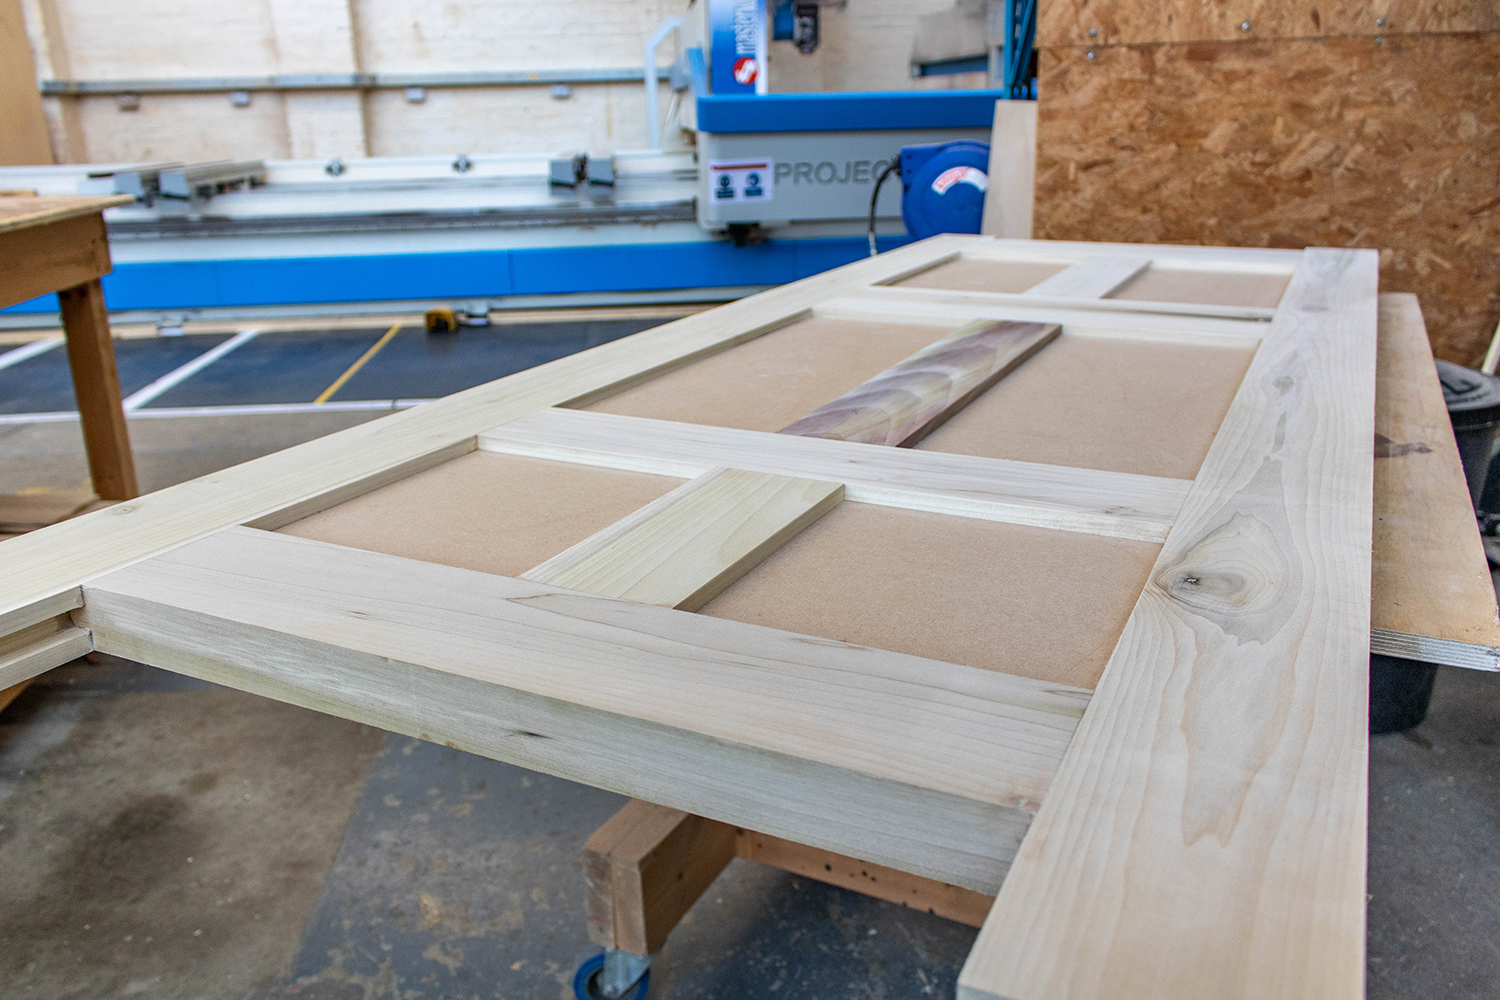 Construction of a wood door in joinery workshop